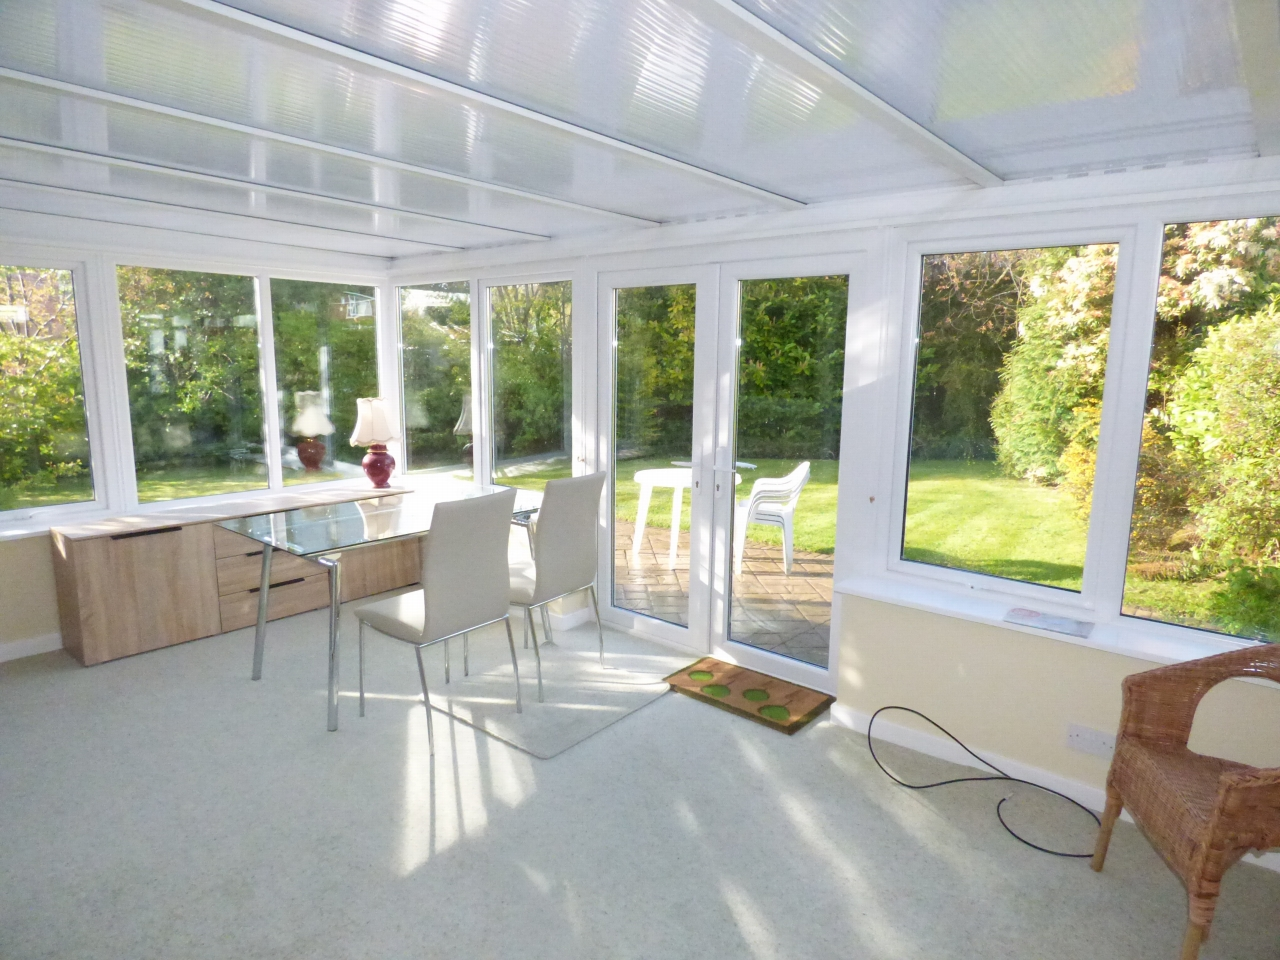 2 Bedroom Detached Bungalow Bungalow For Sale - Image 5